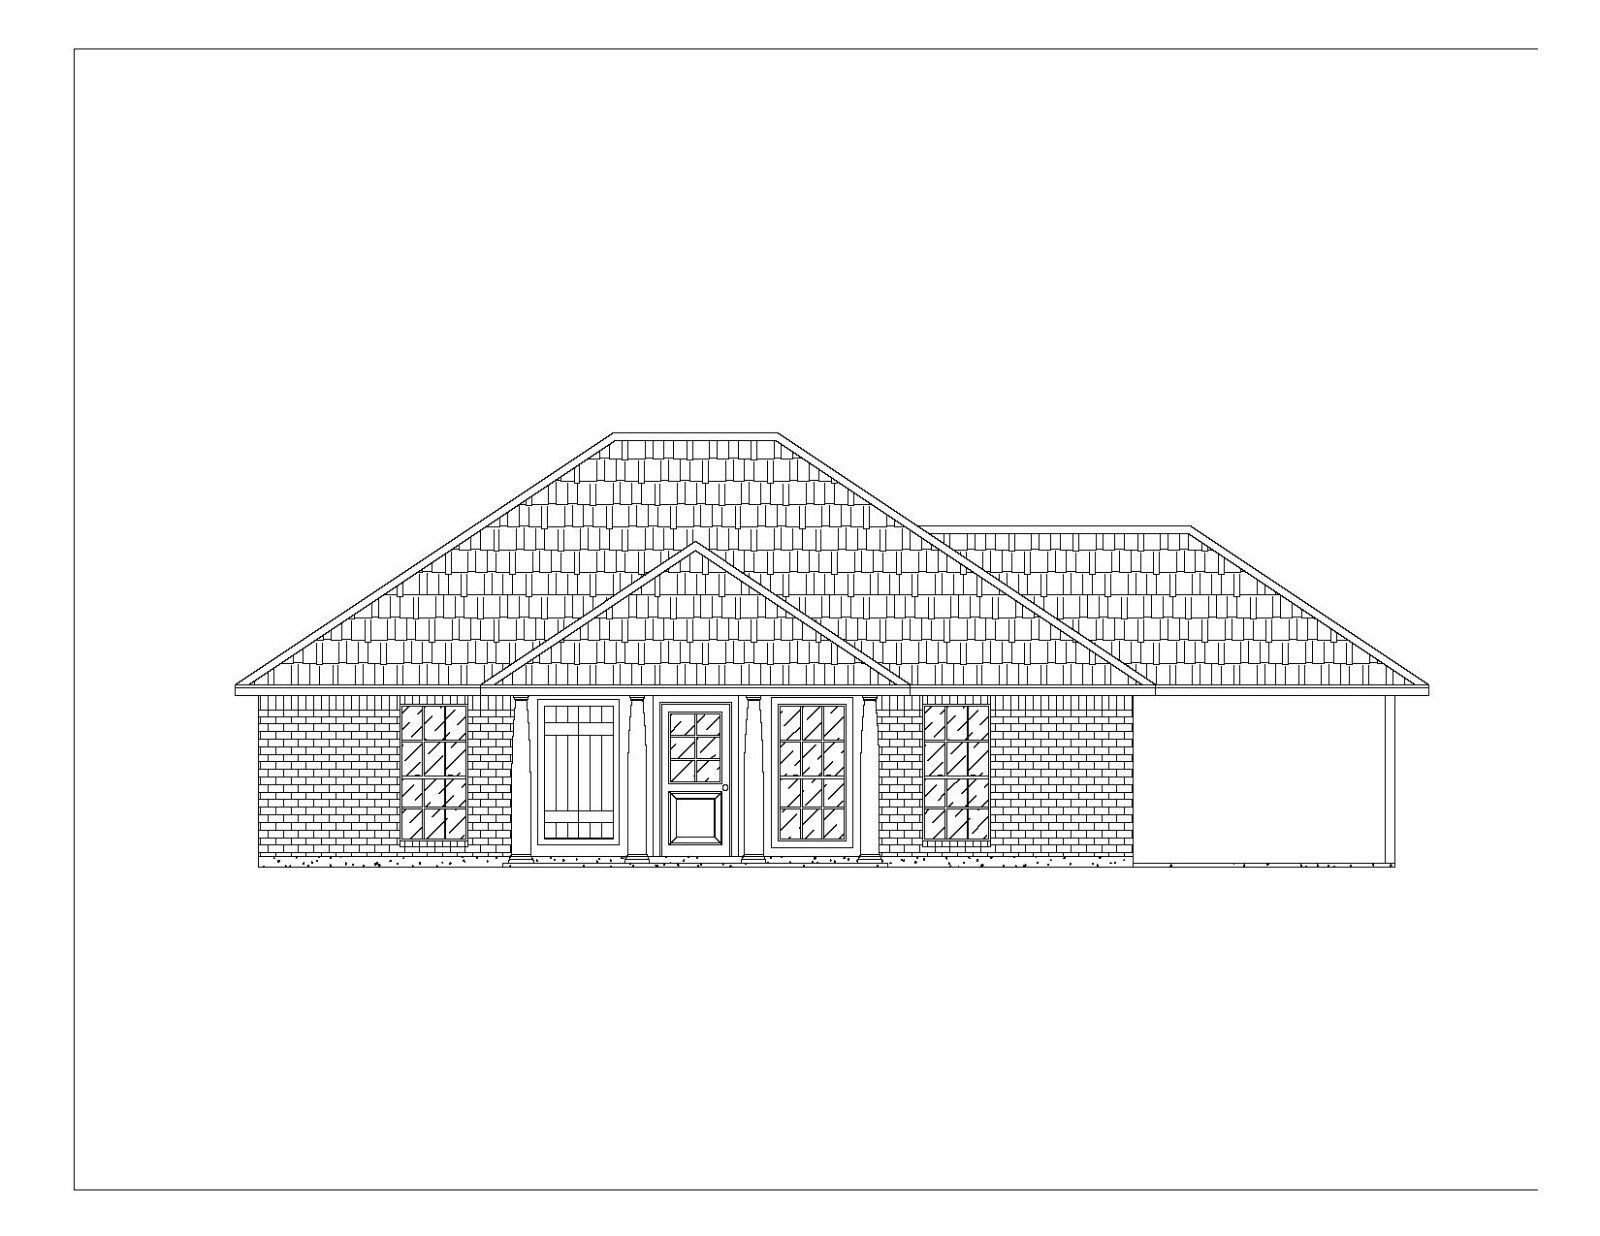 CAD DWG, and PDF files for Custom Home House Plan 1,195 SF Blauprint Plans